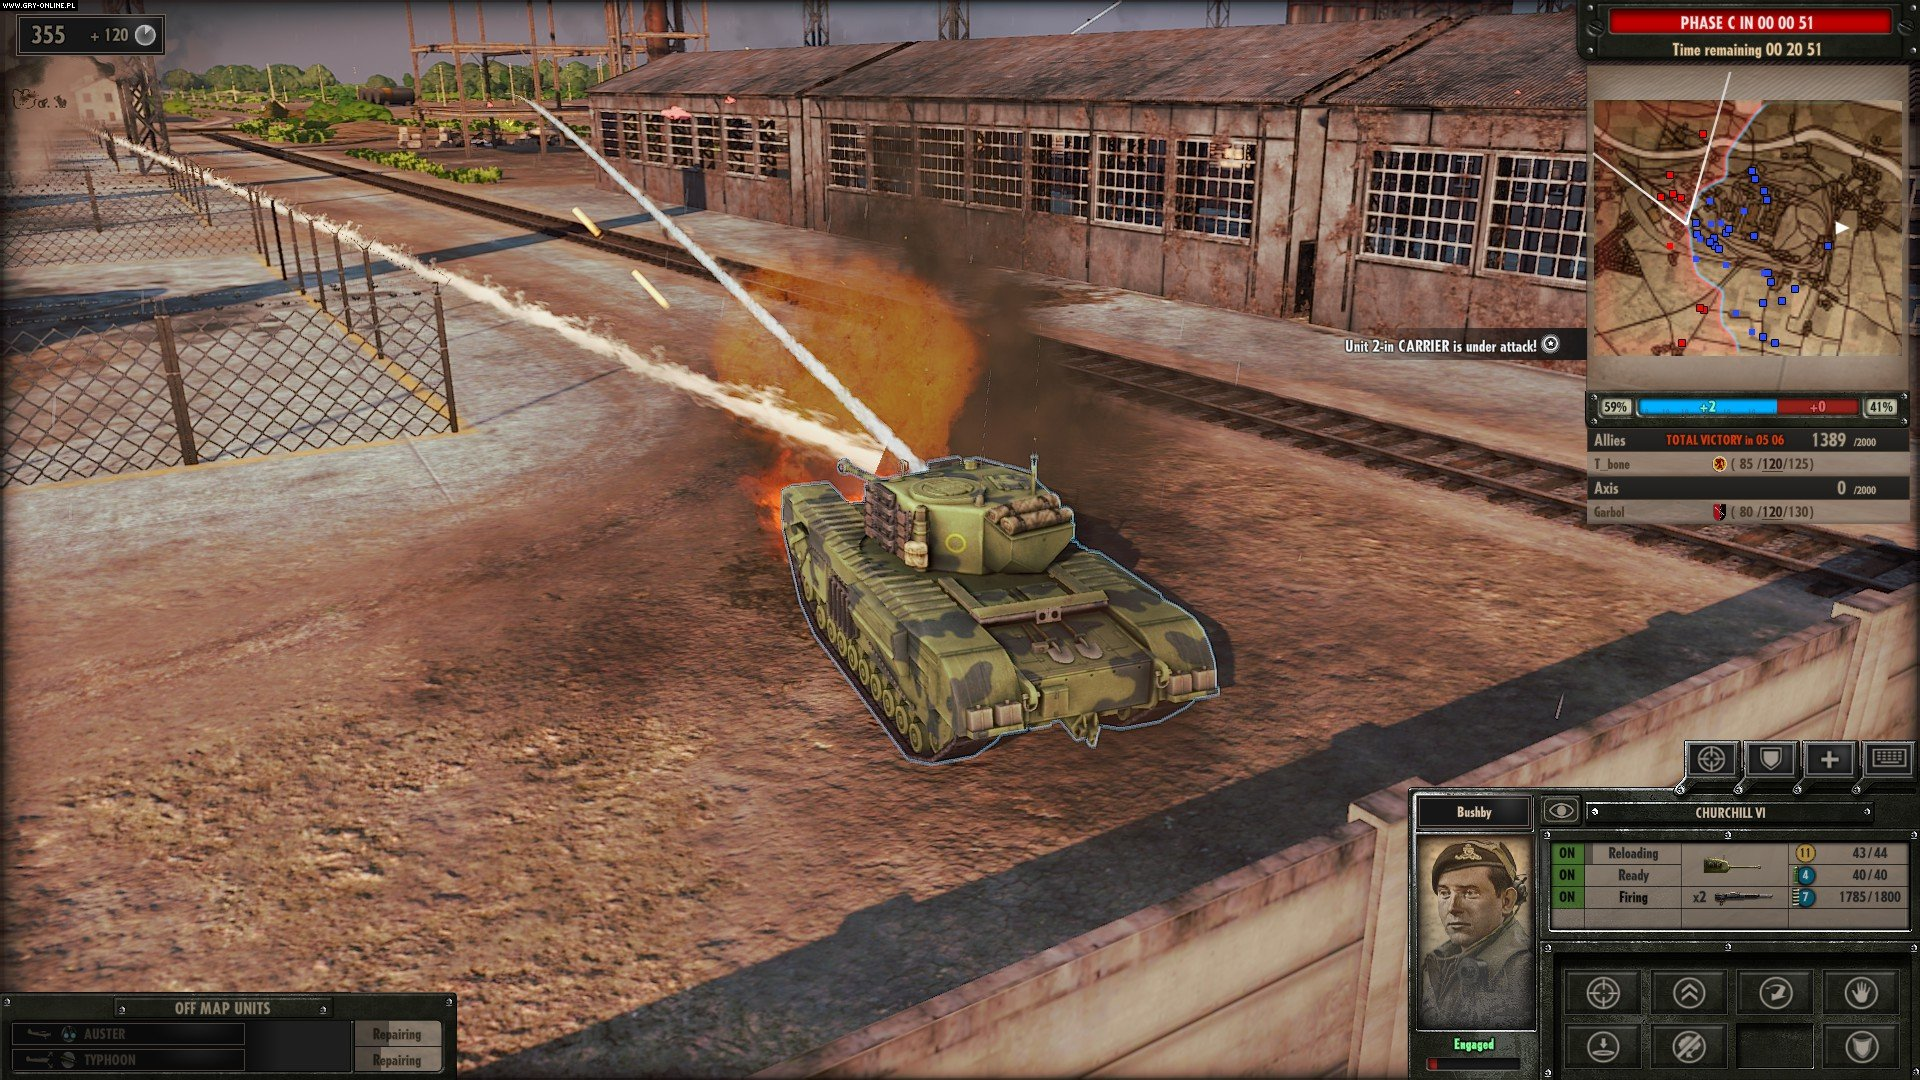 Steel Division: Normandy 44 PC Games Image 28/41, Eugen Systems, Paradox Interactive